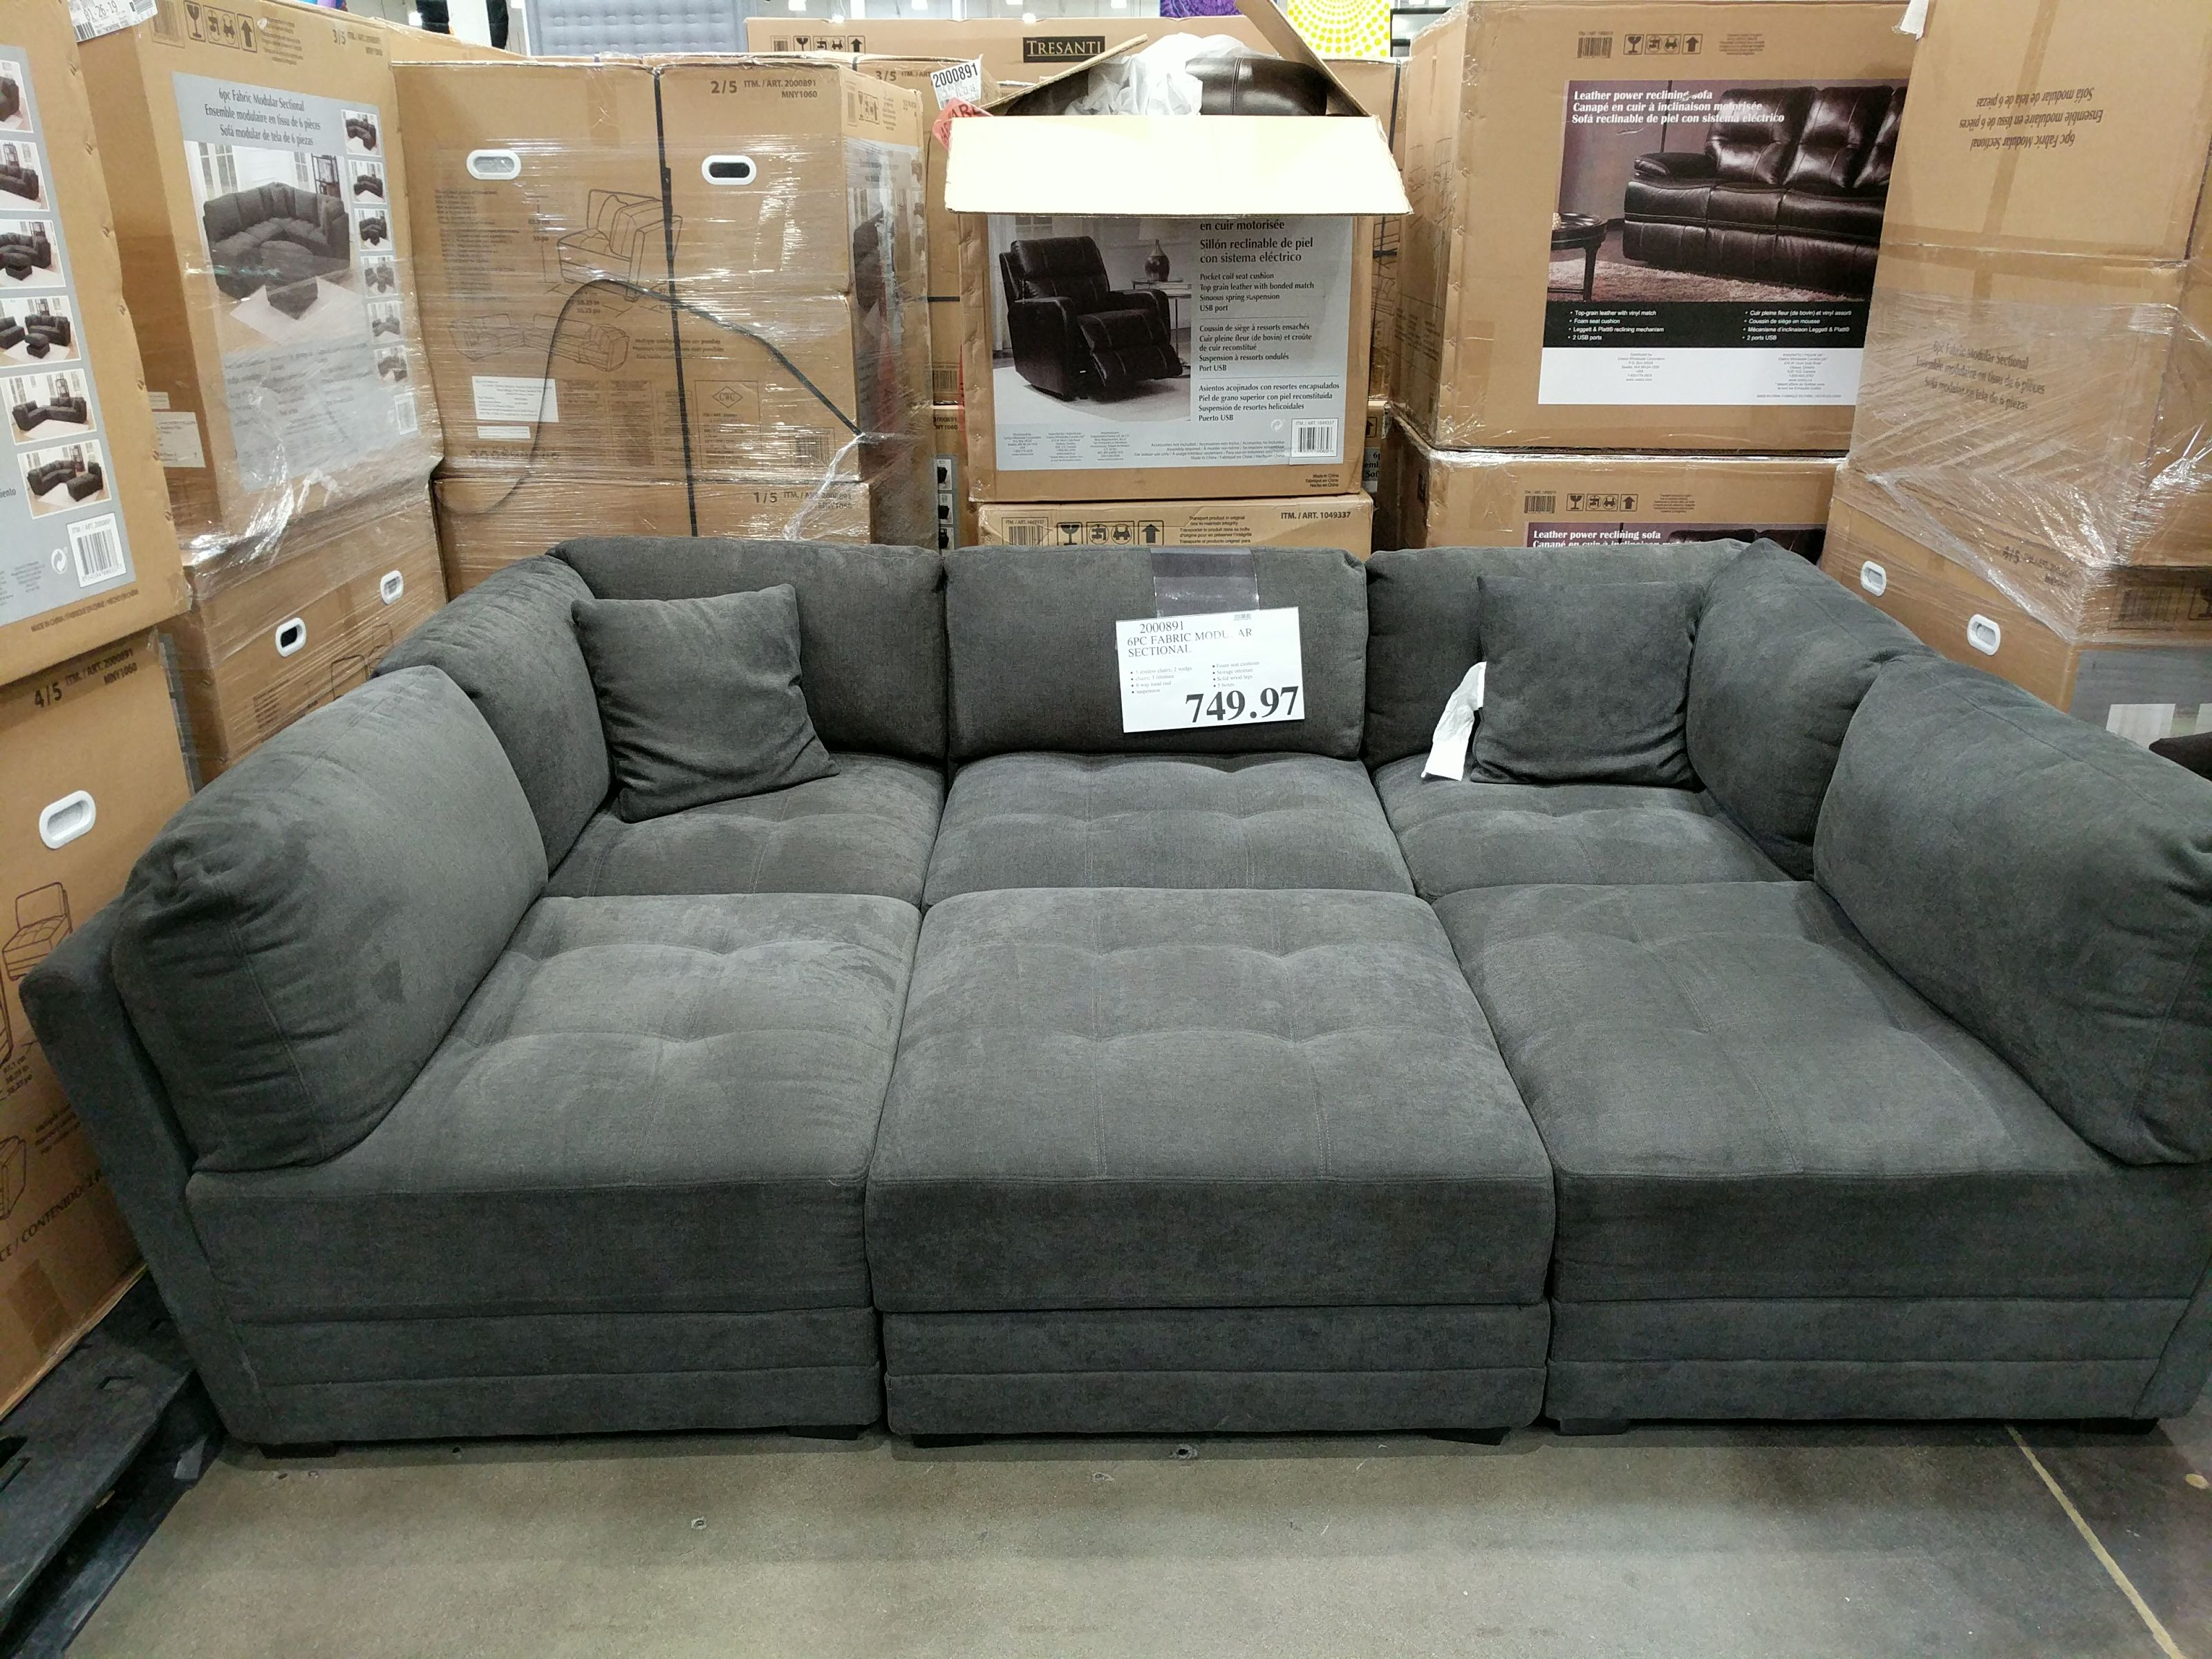 6 Piece Fabric Modular Sectional 749 97 Costco Clearance